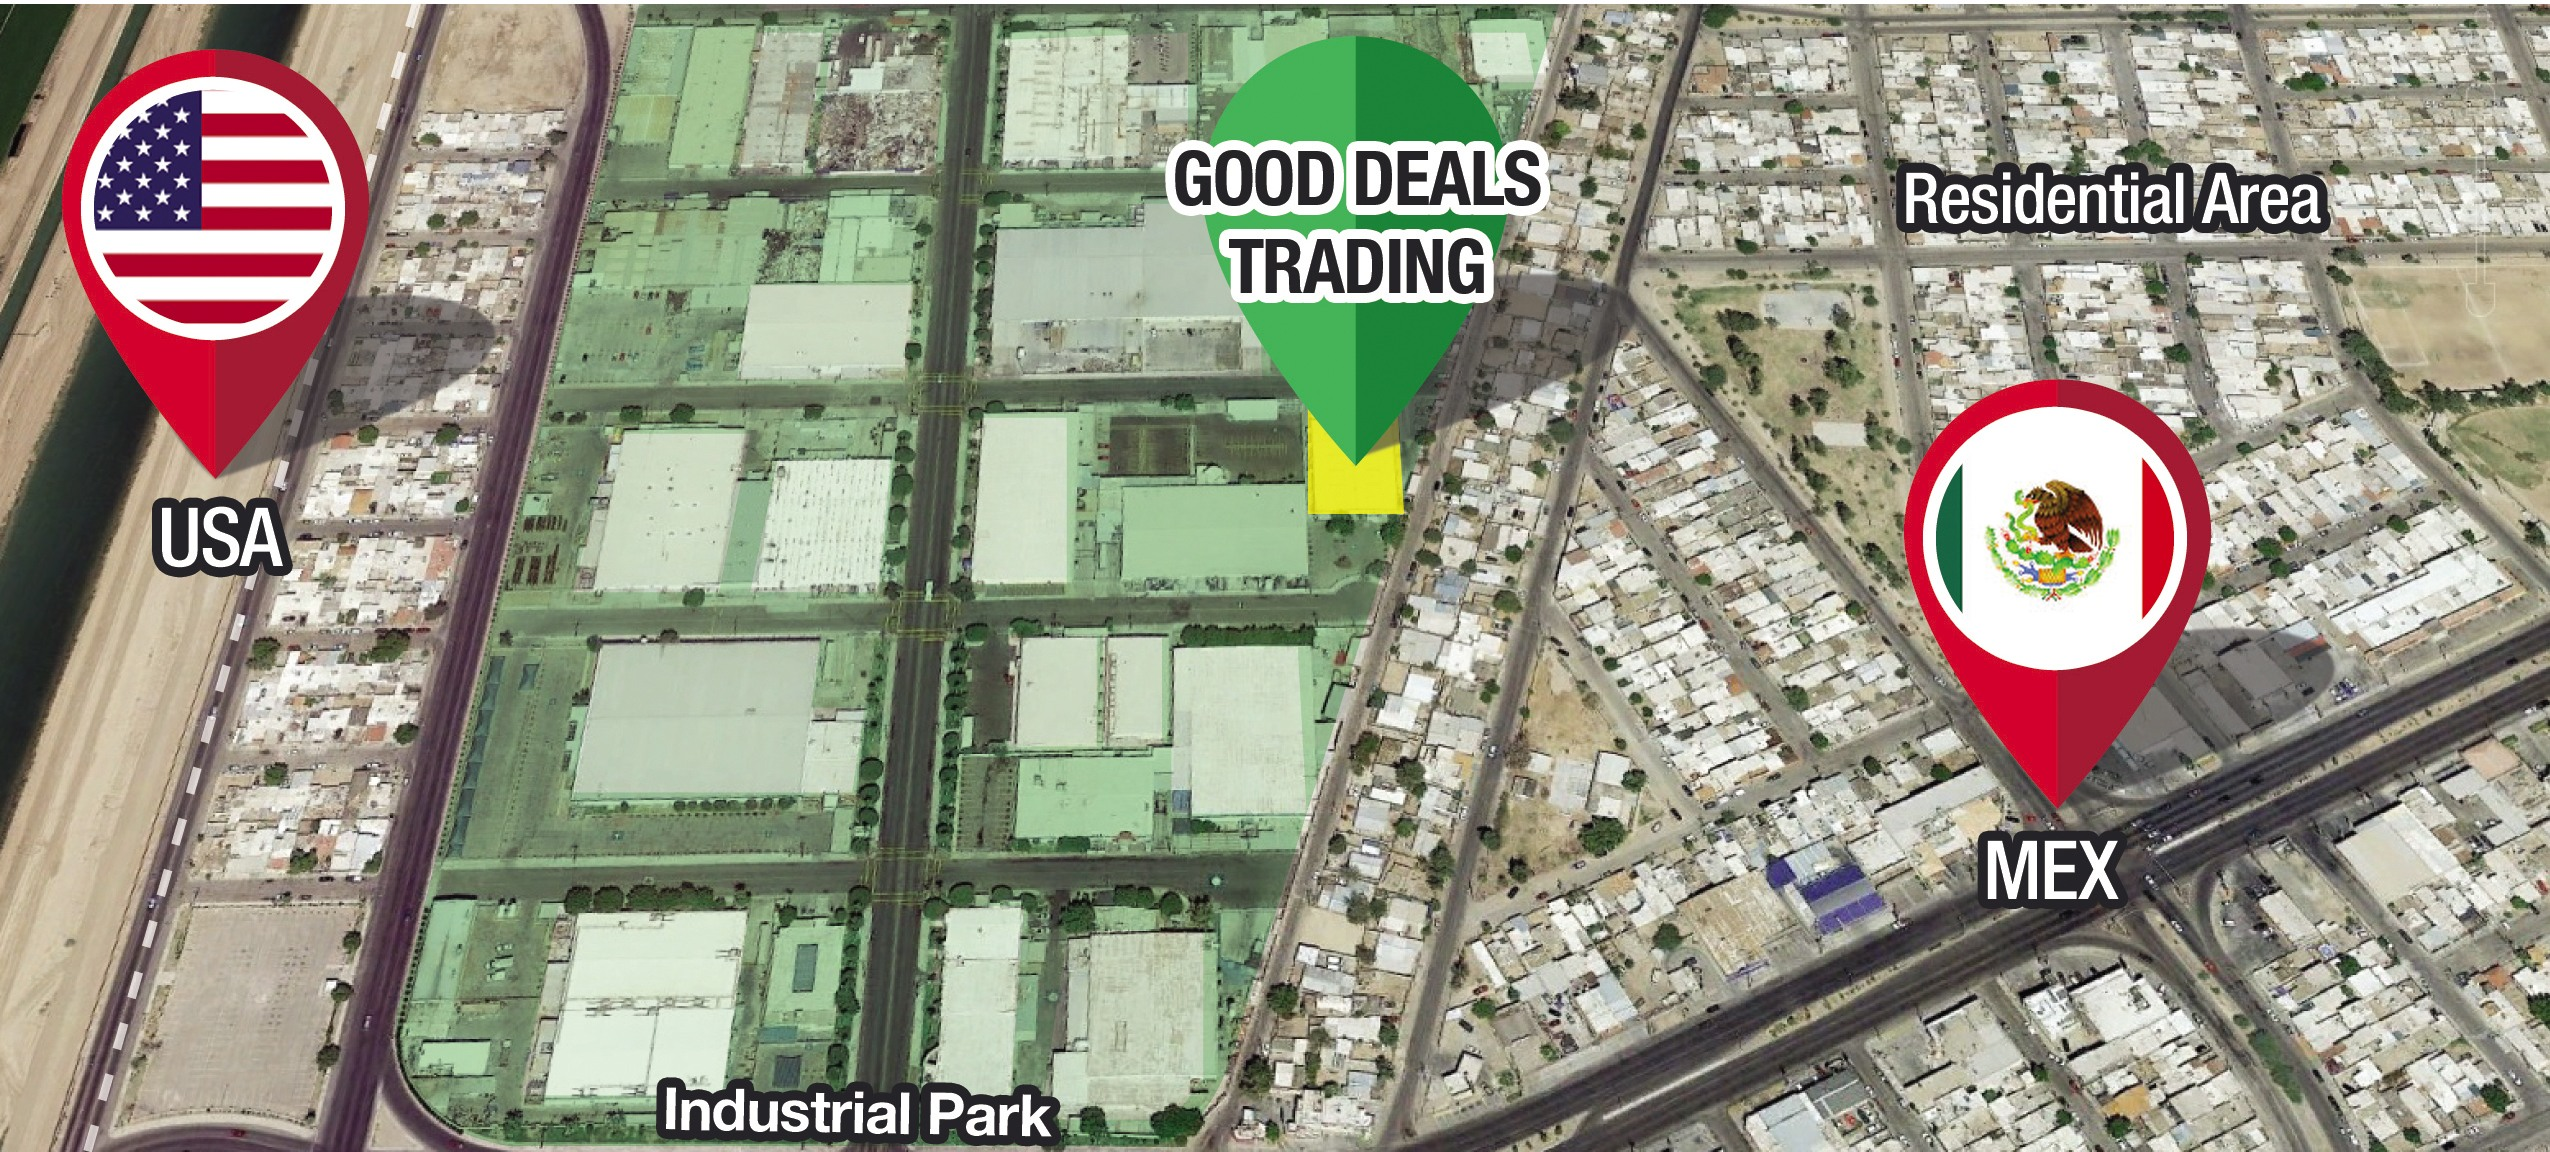 Good Deals Trading Location - PIMSA Industrial Parks in Mexico